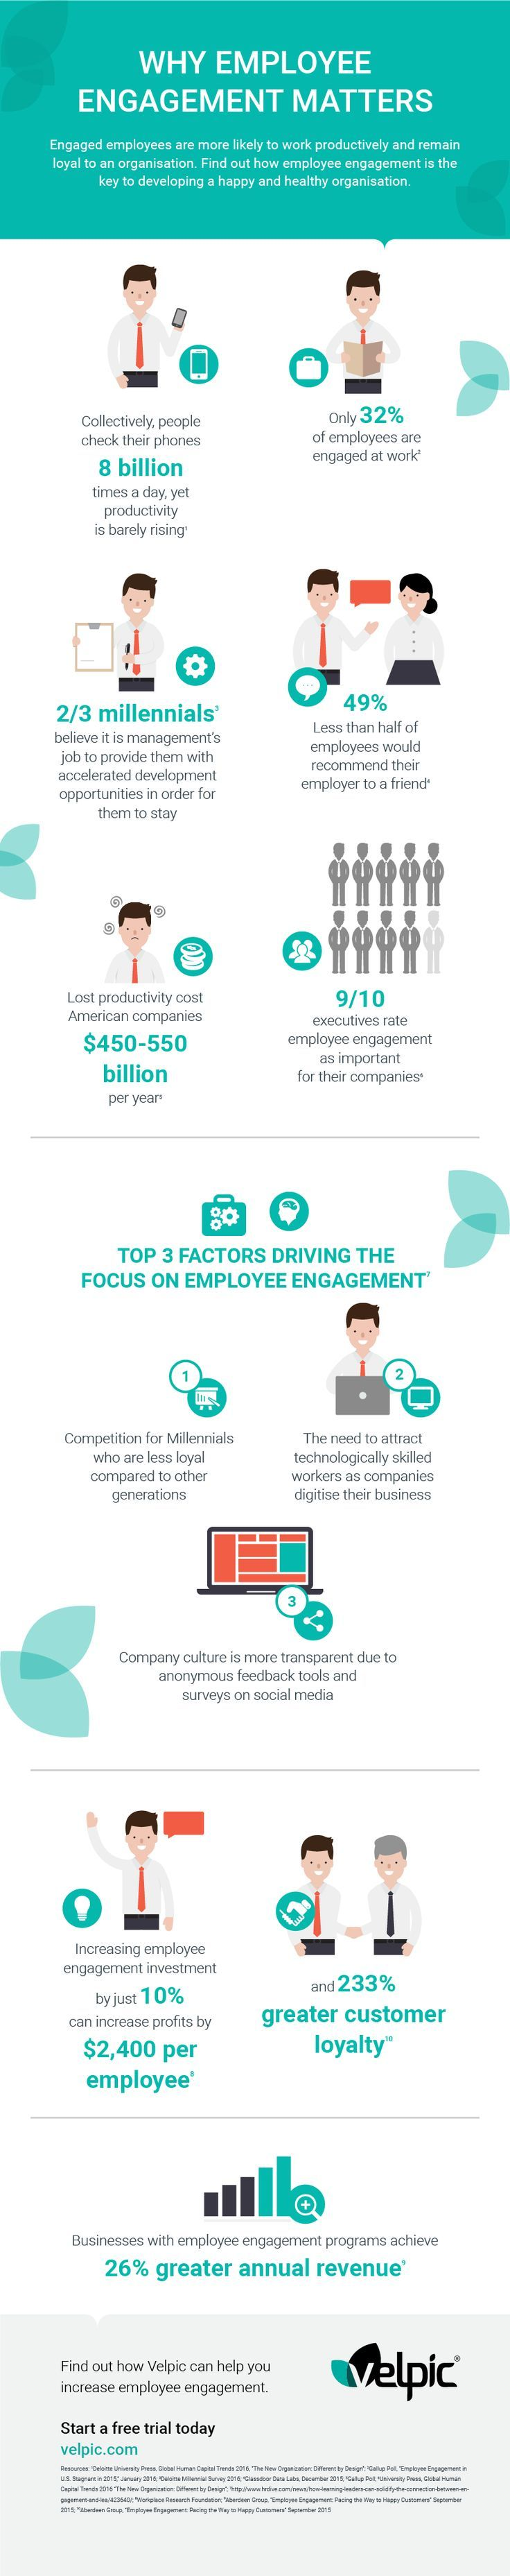 Best C I Images On   Employee Engagement Business